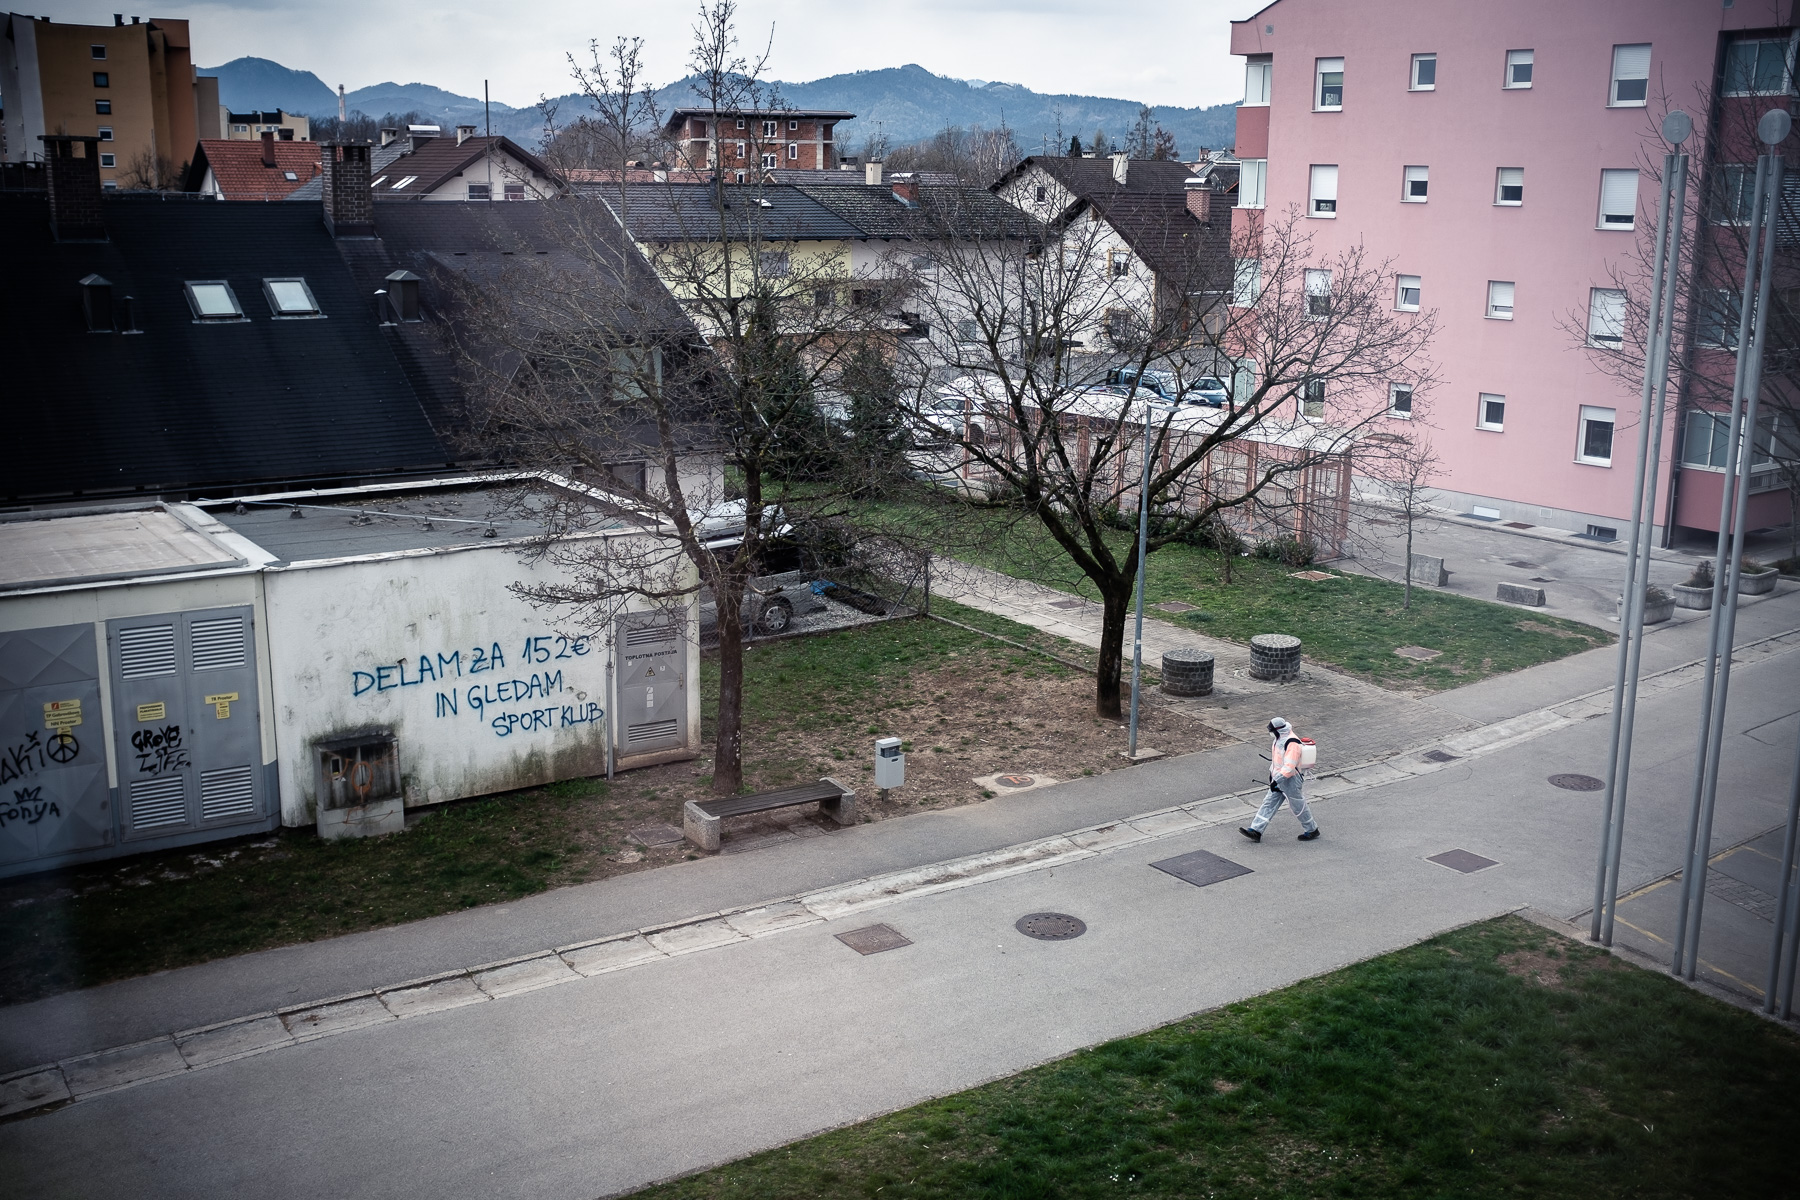 A man in full protective suit sprays disinfectant on public surfaces in Kranj, Slovenia, during a nationwide coronavirus lockdown, on March 24, 2020.